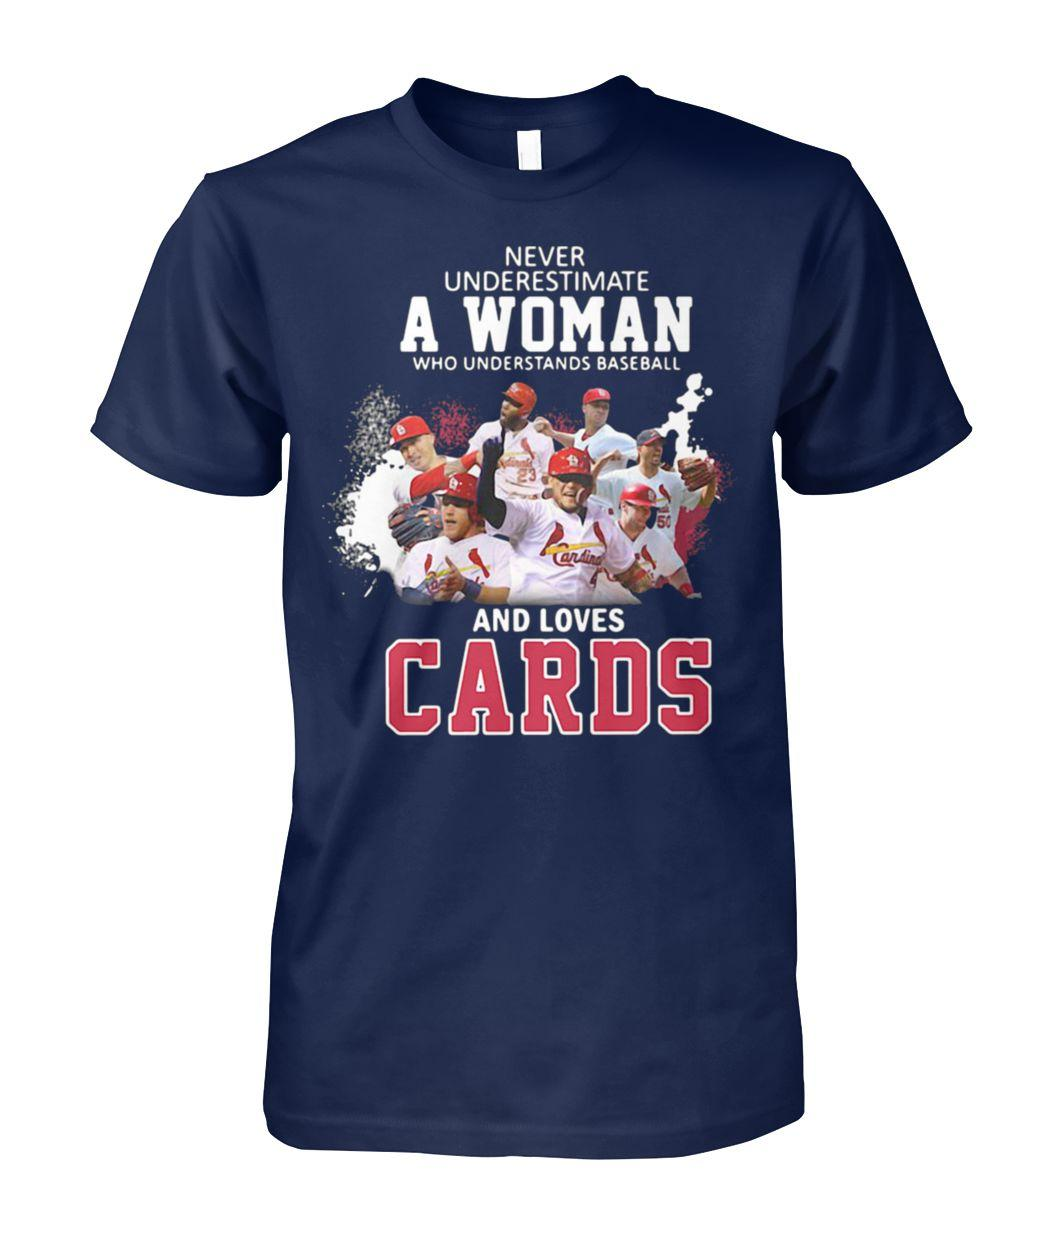 Never underestimate a woman who understands baseball and loves st louis cardinals unisex cotton tee